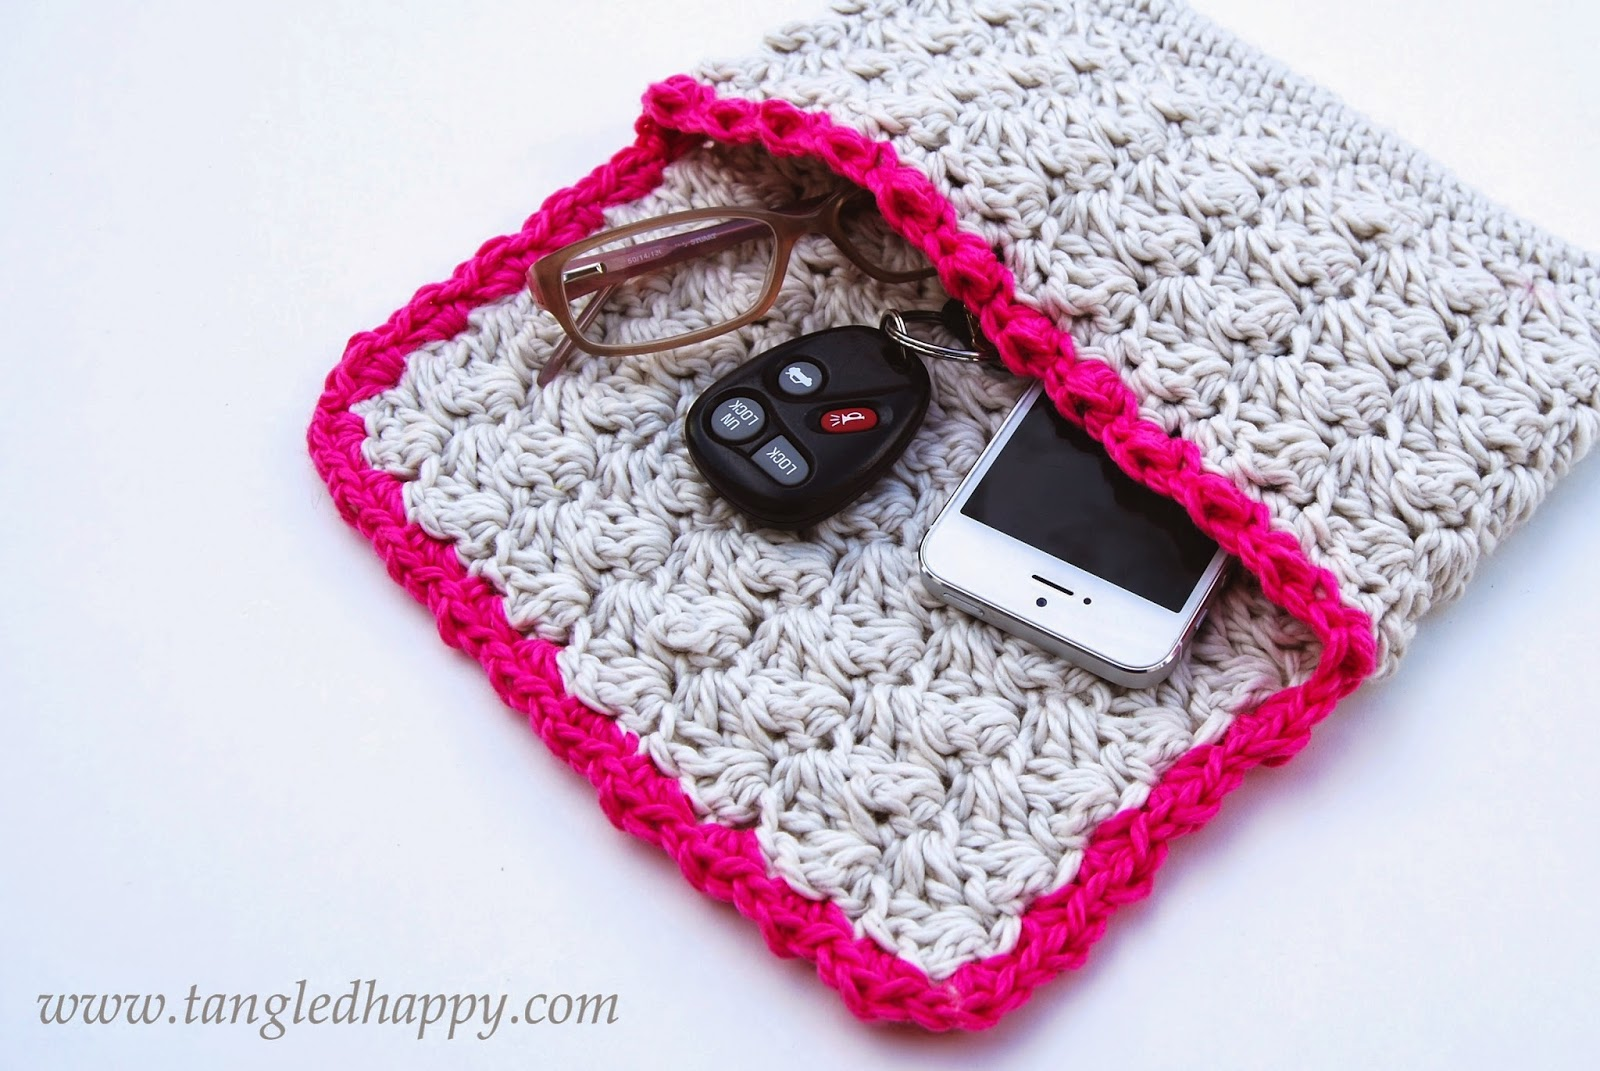 Crochet Clutch Lace Pattern : ... happy: DIY Anthropologie Inspired Summer Clutch {Free Crochet Pattern